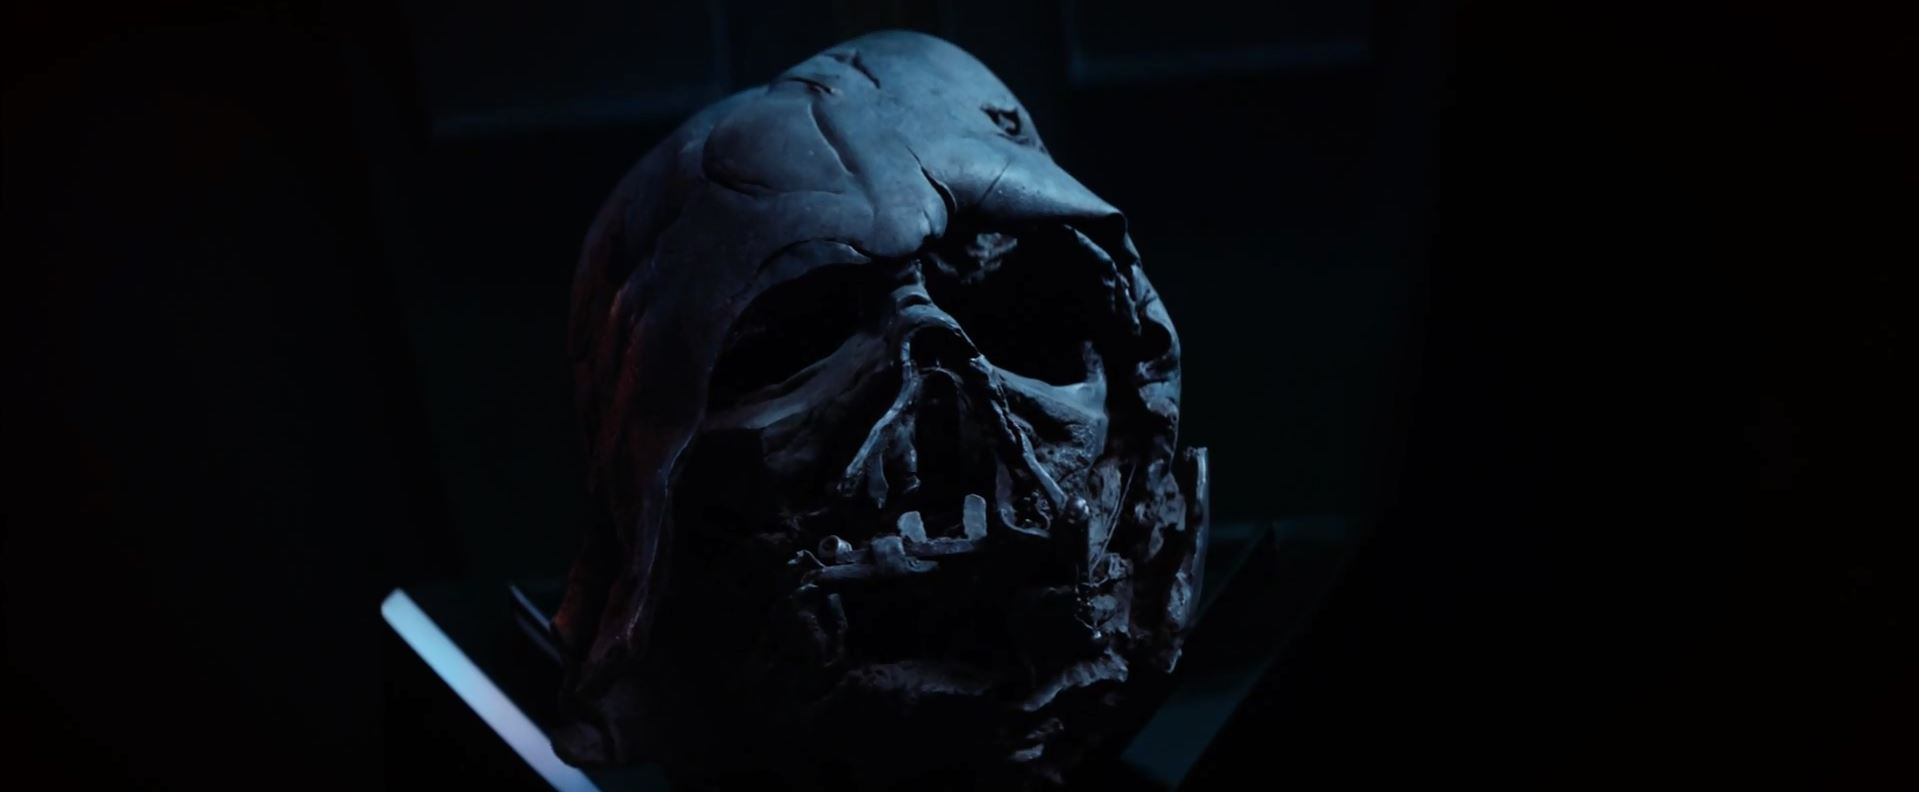 Darth Vader molten helmet. New Star Wars The Force Awakens Trailer Released!